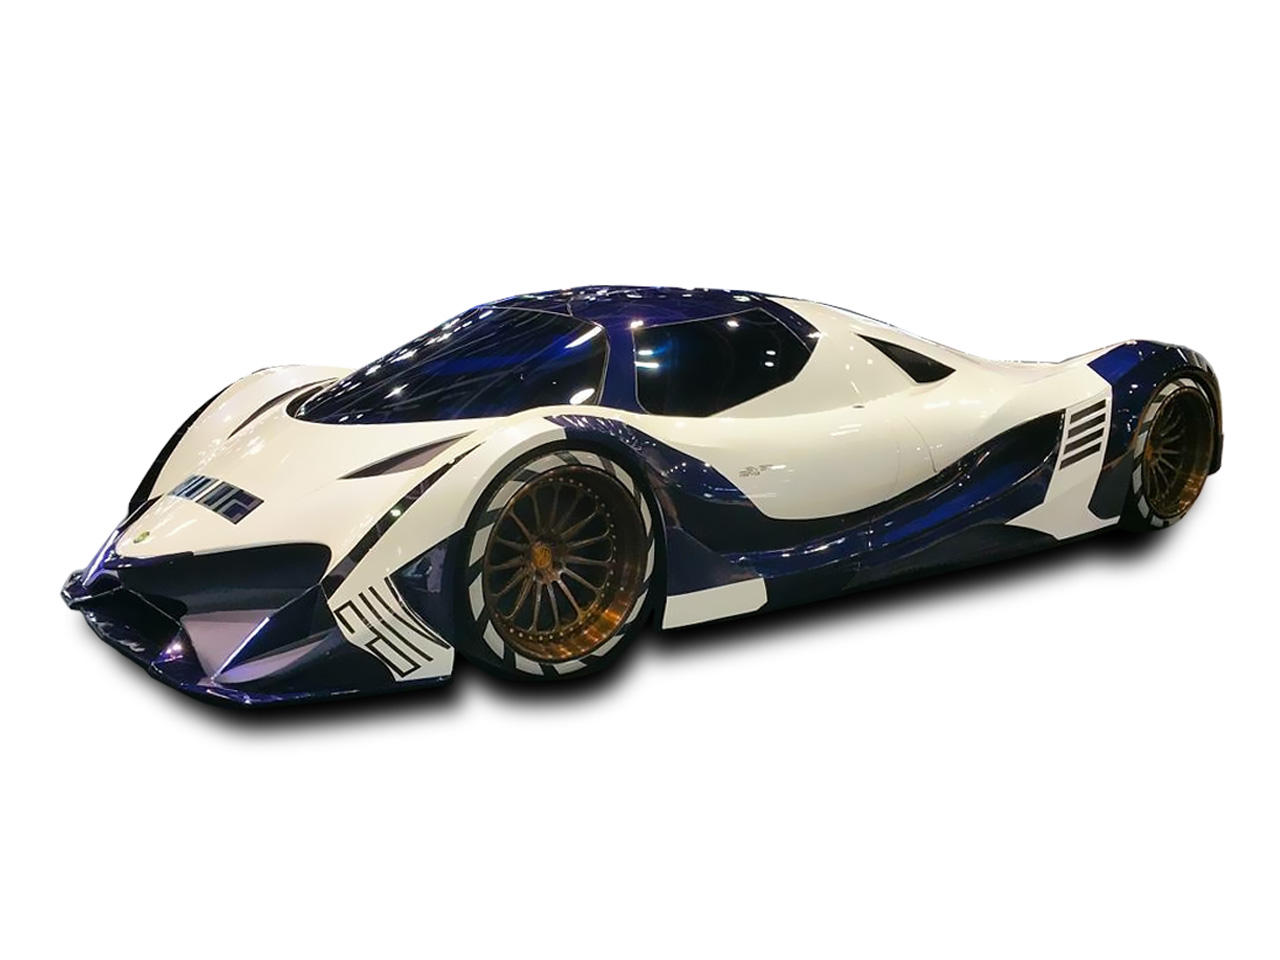 car features list for devel sixteen 2018 12 3l v16 uae